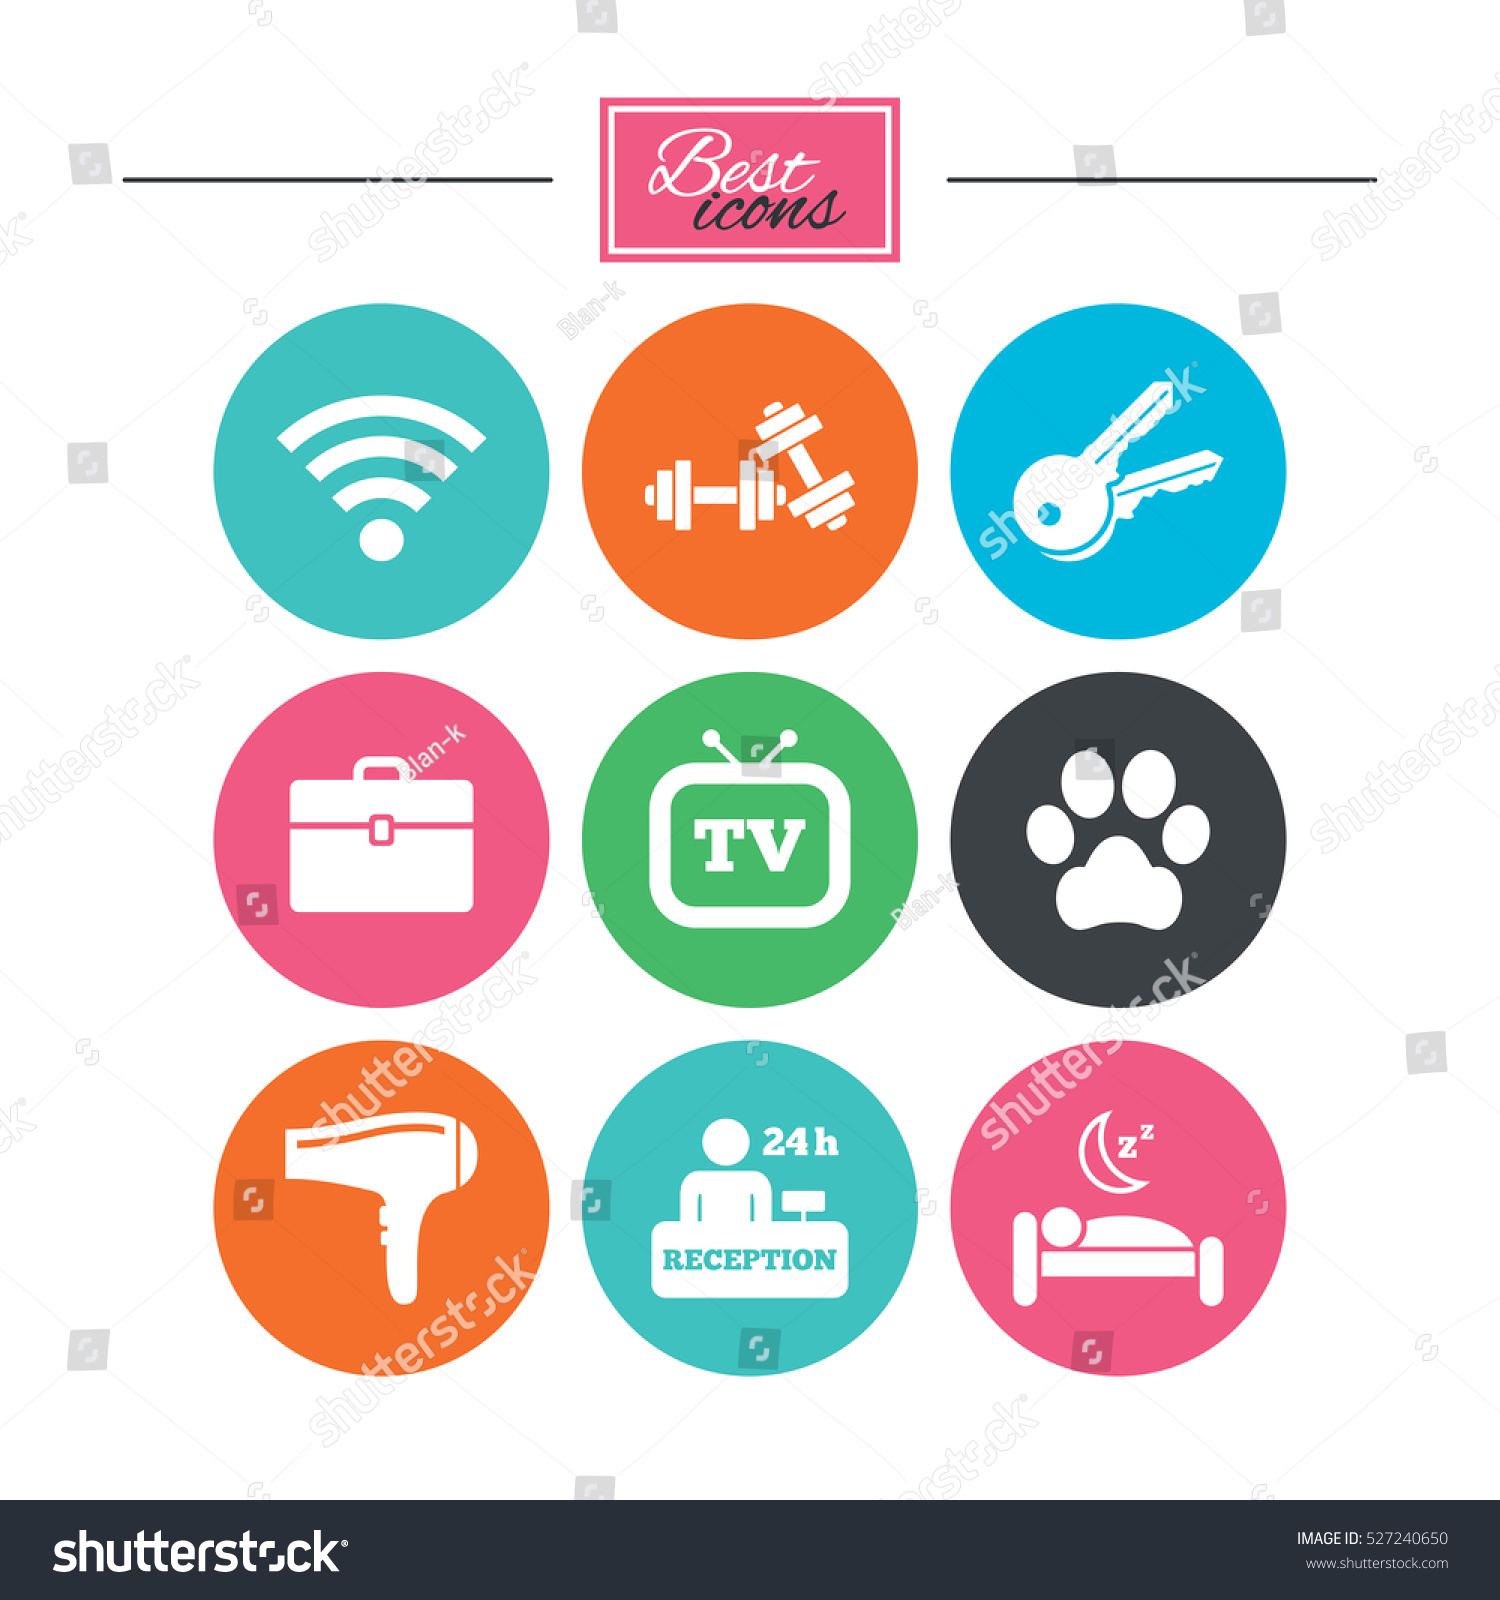 Apartment Service: Hotel Apartment Service Icons Wifi Internet Stock Vector